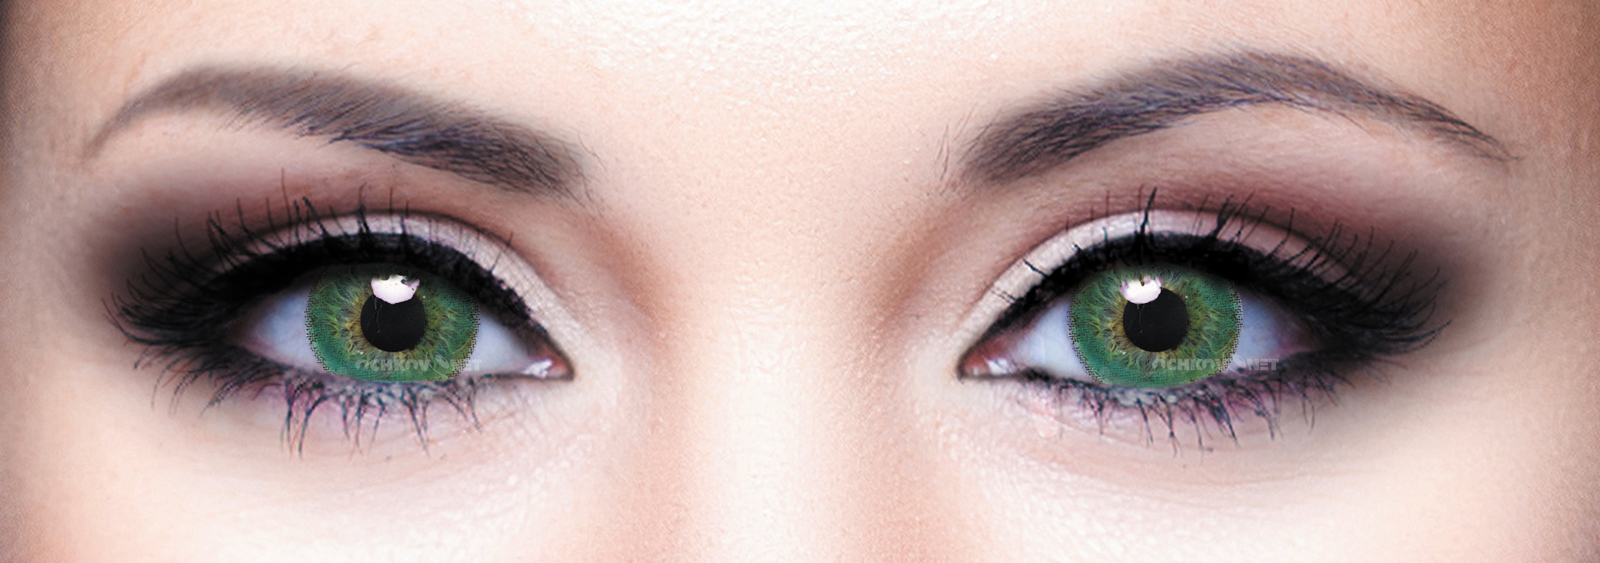 Freshlook Dimensions Sea Green >> Buy Contact Lenses Freshlook Dimensions In Germany At Low Price